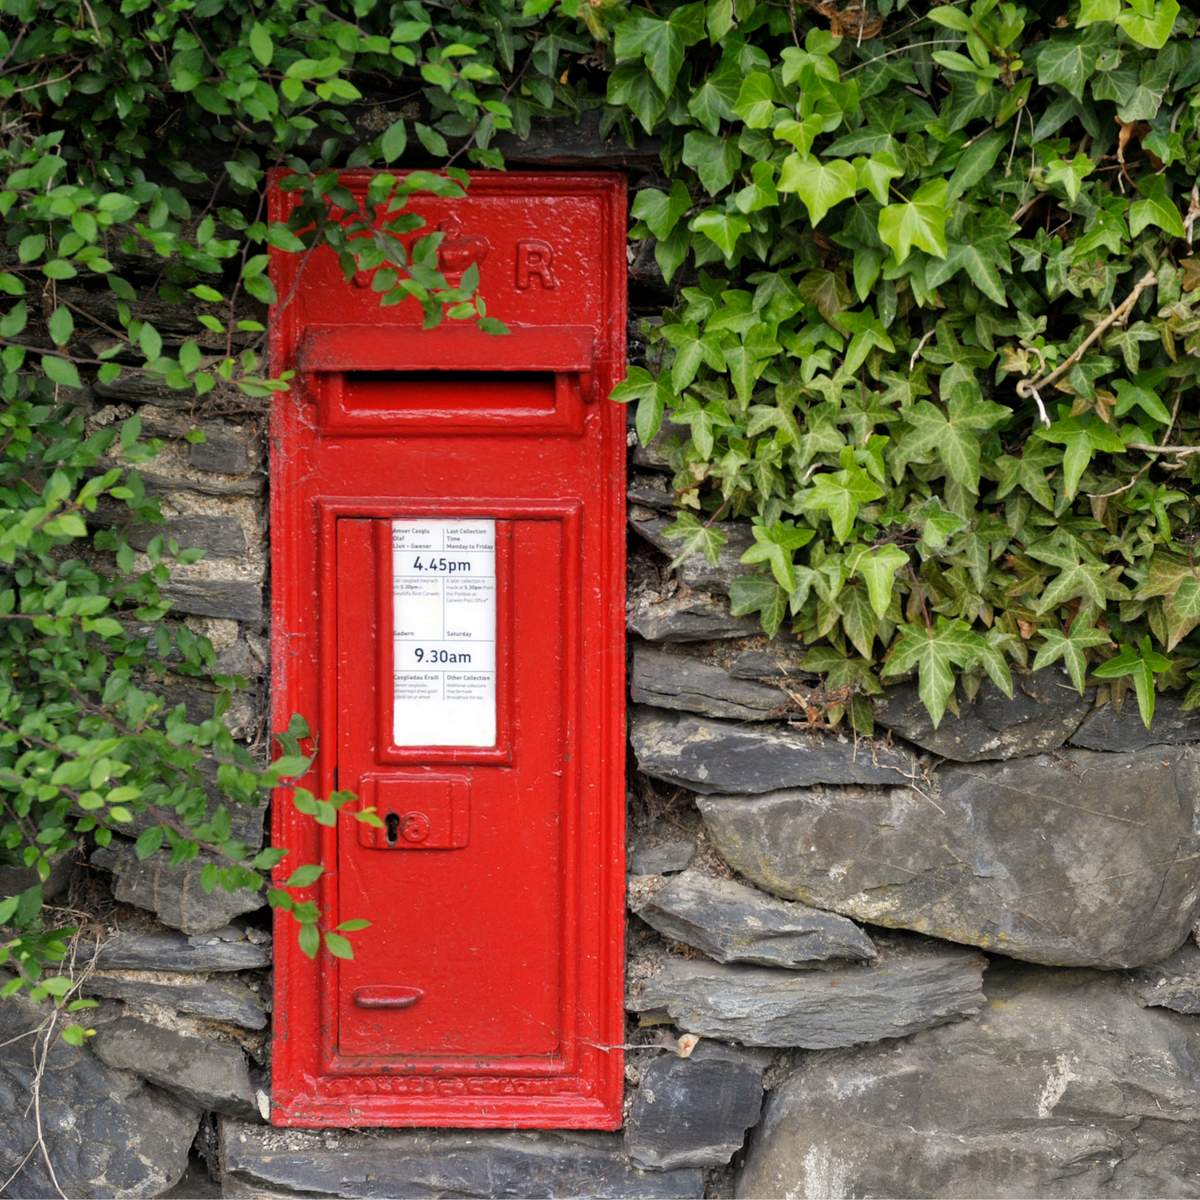 red royal mail post box with greenery around it